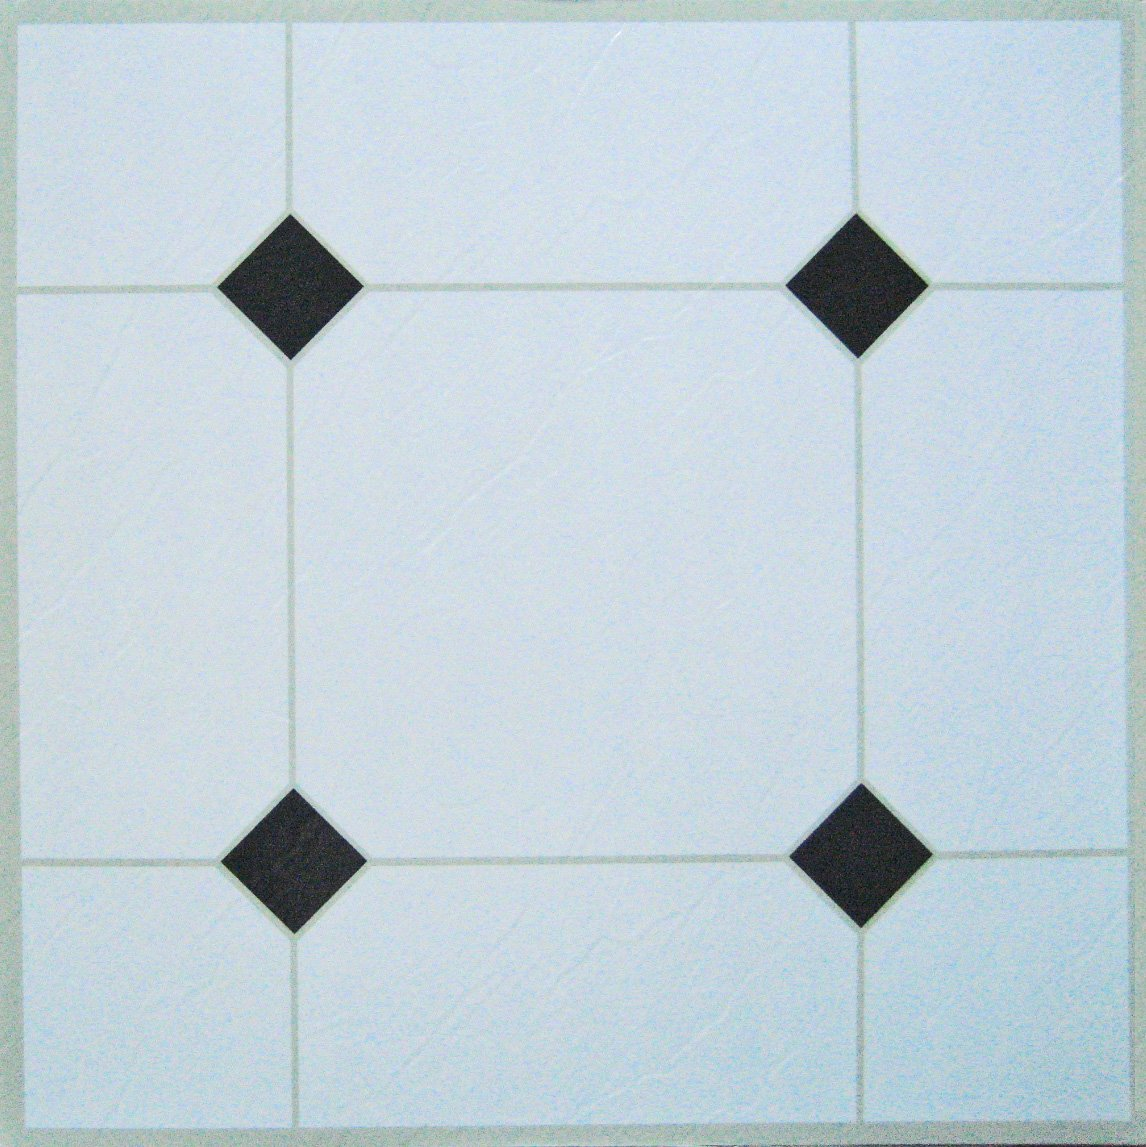 24 x white black diamond self adhesive stick on vinyl flooring floor tiles ebay. Black Bedroom Furniture Sets. Home Design Ideas